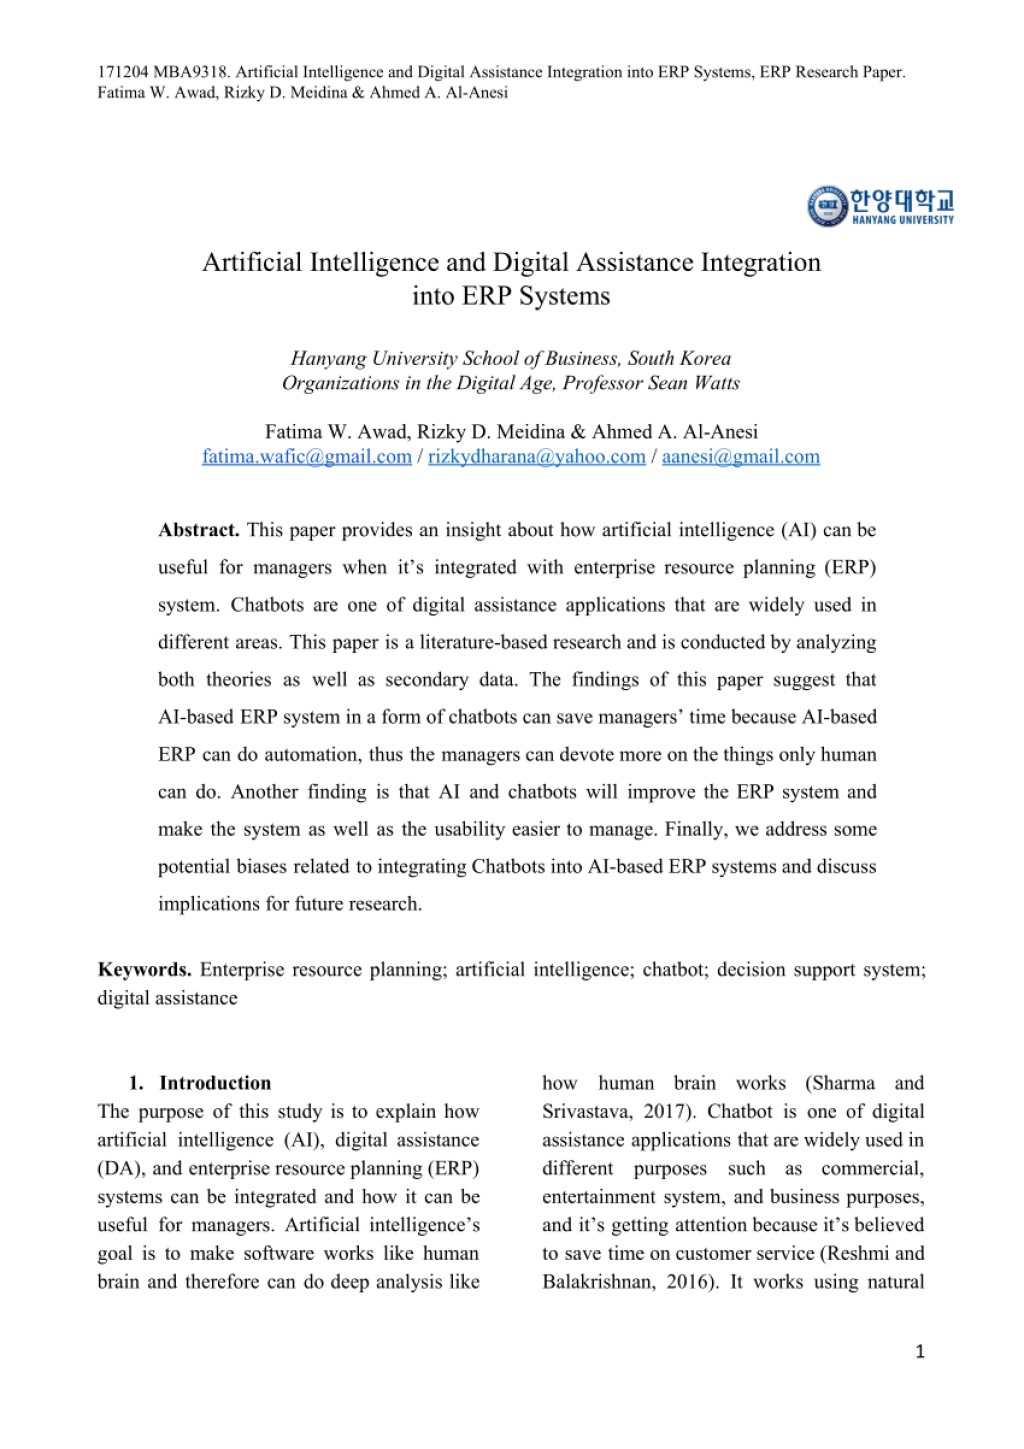 001 Artificial Intelligence Research Paper Topics Archaicawful Pdf 2018 Large